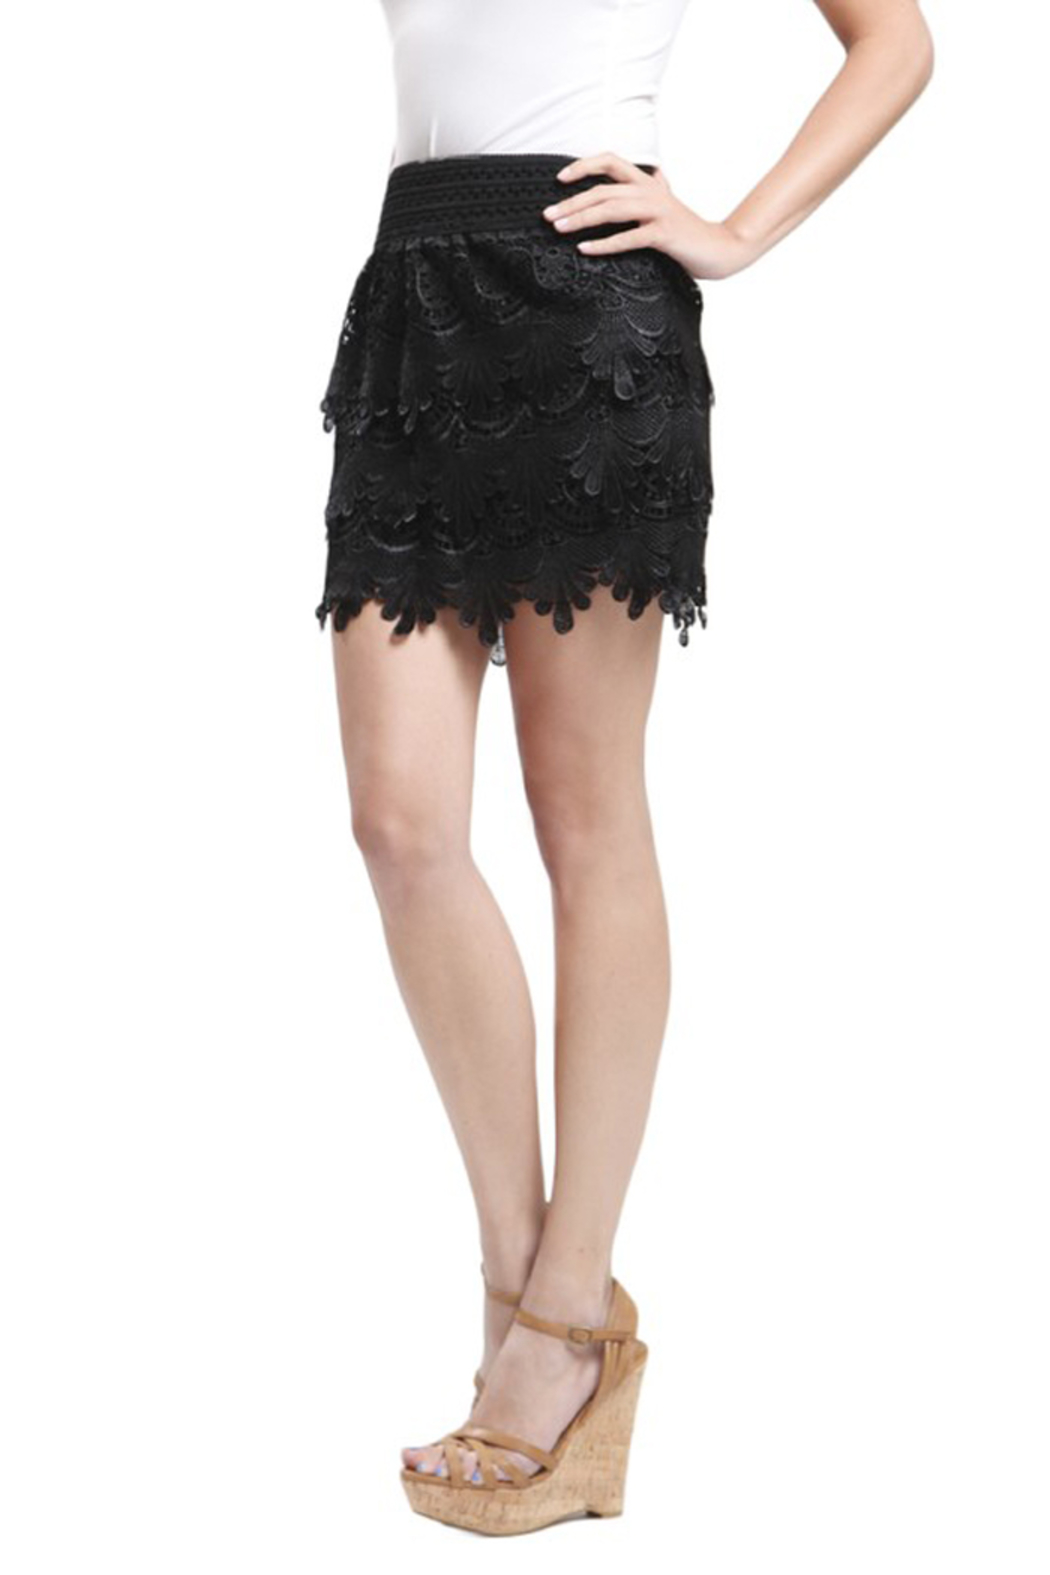 Blu Pepper Black Woven Lace Skirt - Front Full Image